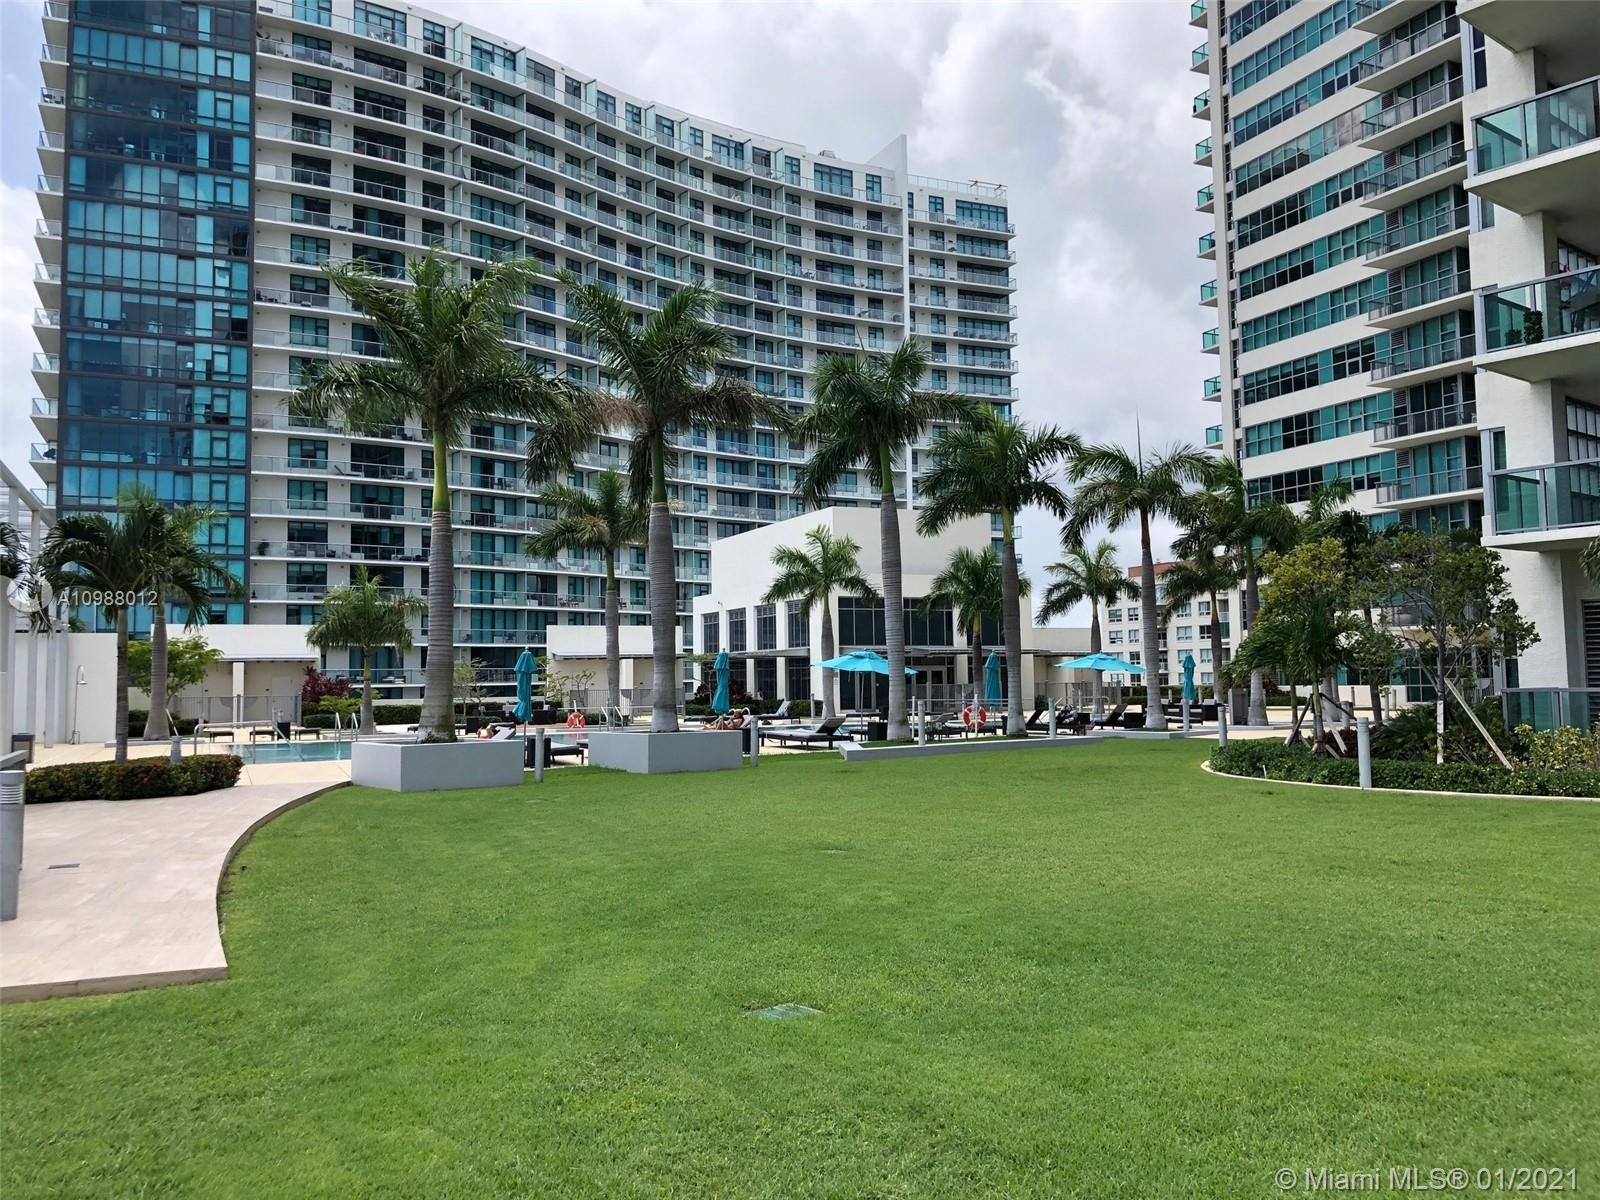 3301 NE 1st Ave # H2011, Miami, Florida 33137, 1 Bedroom Bedrooms, ,2 BathroomsBathrooms,Residential,For Sale,3301 NE 1st Ave # H2011,A10988012